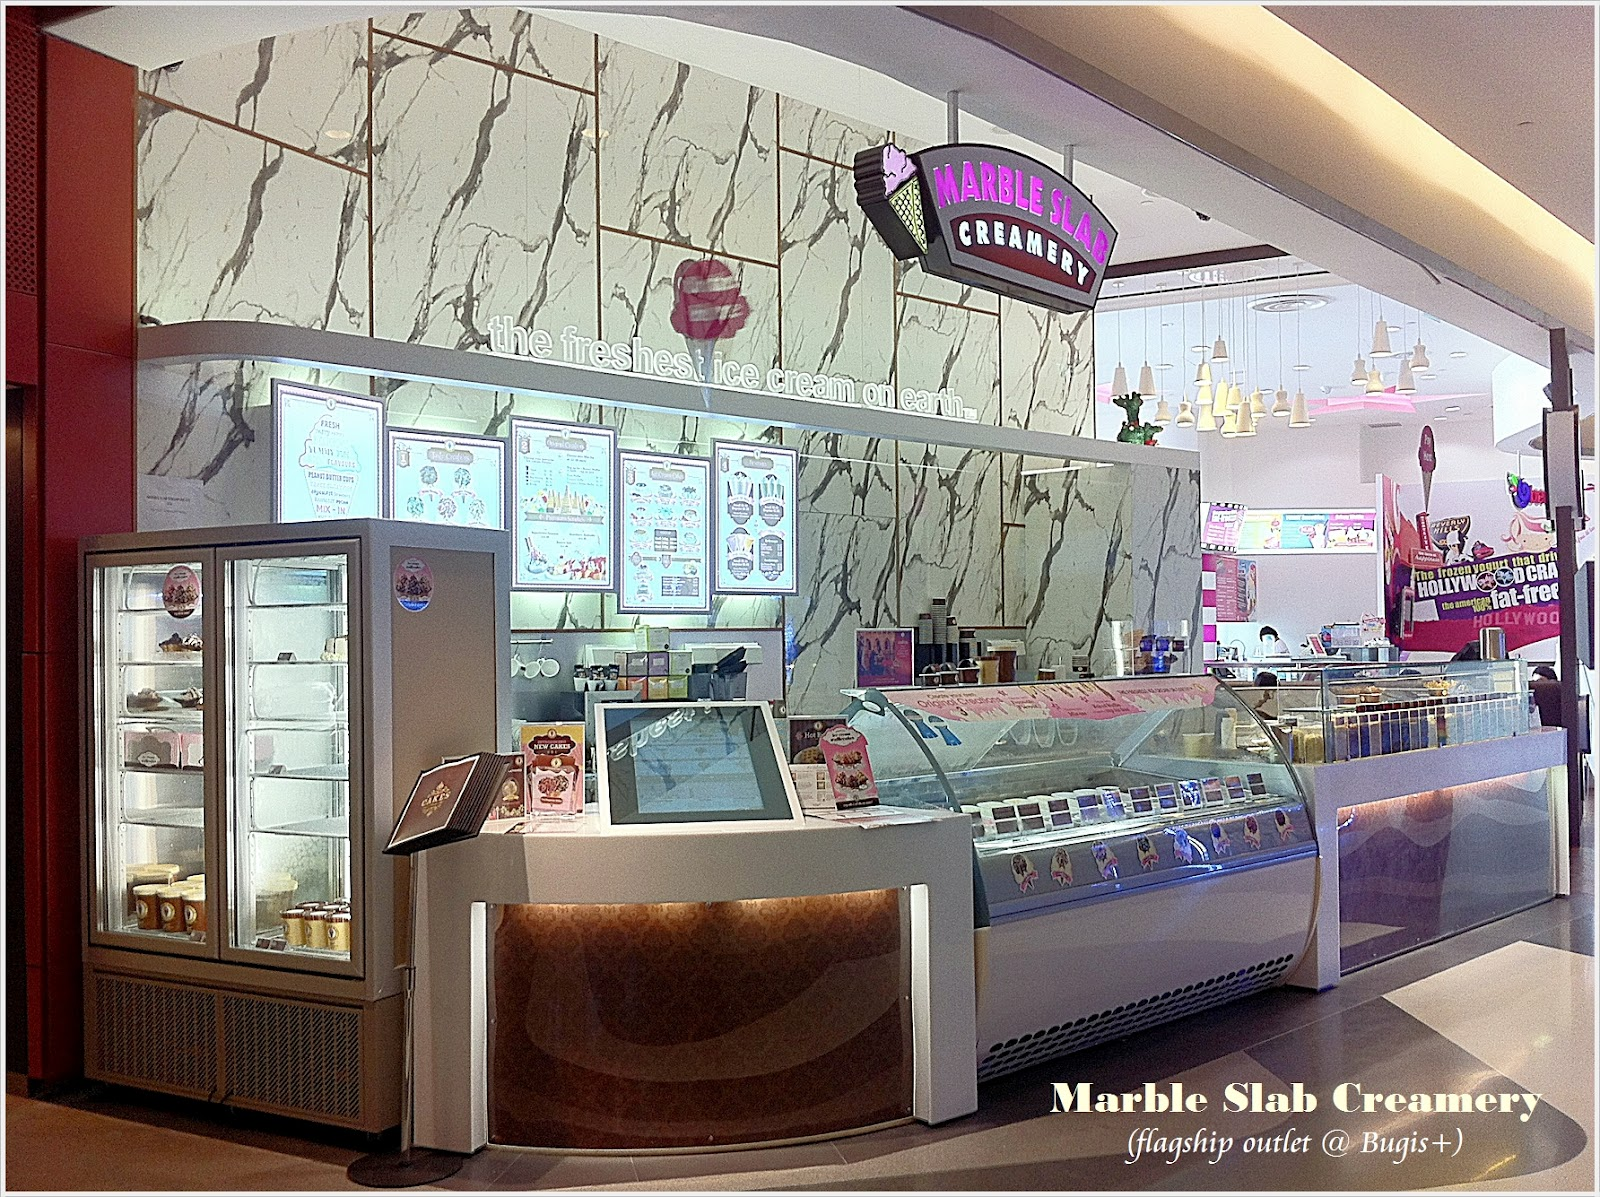 Cuisine Paradise | Eat, Shop And Travel: Free Scoop Day at ...